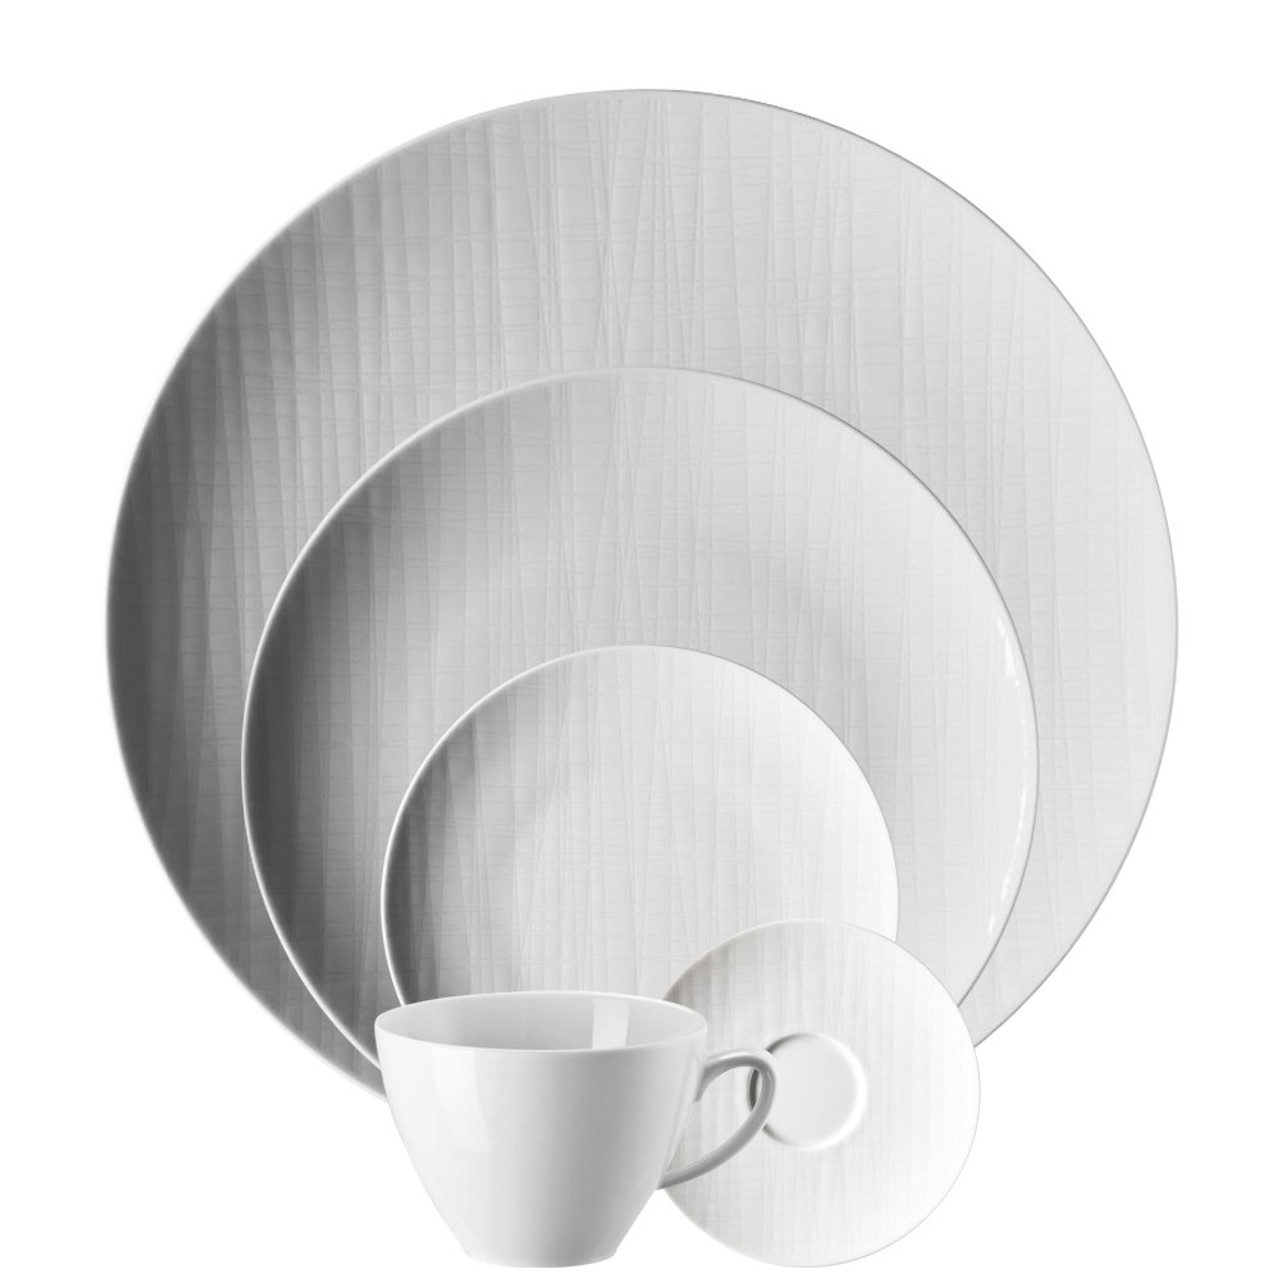 5 piece place setting 5 pps mesh white rosenthal shop